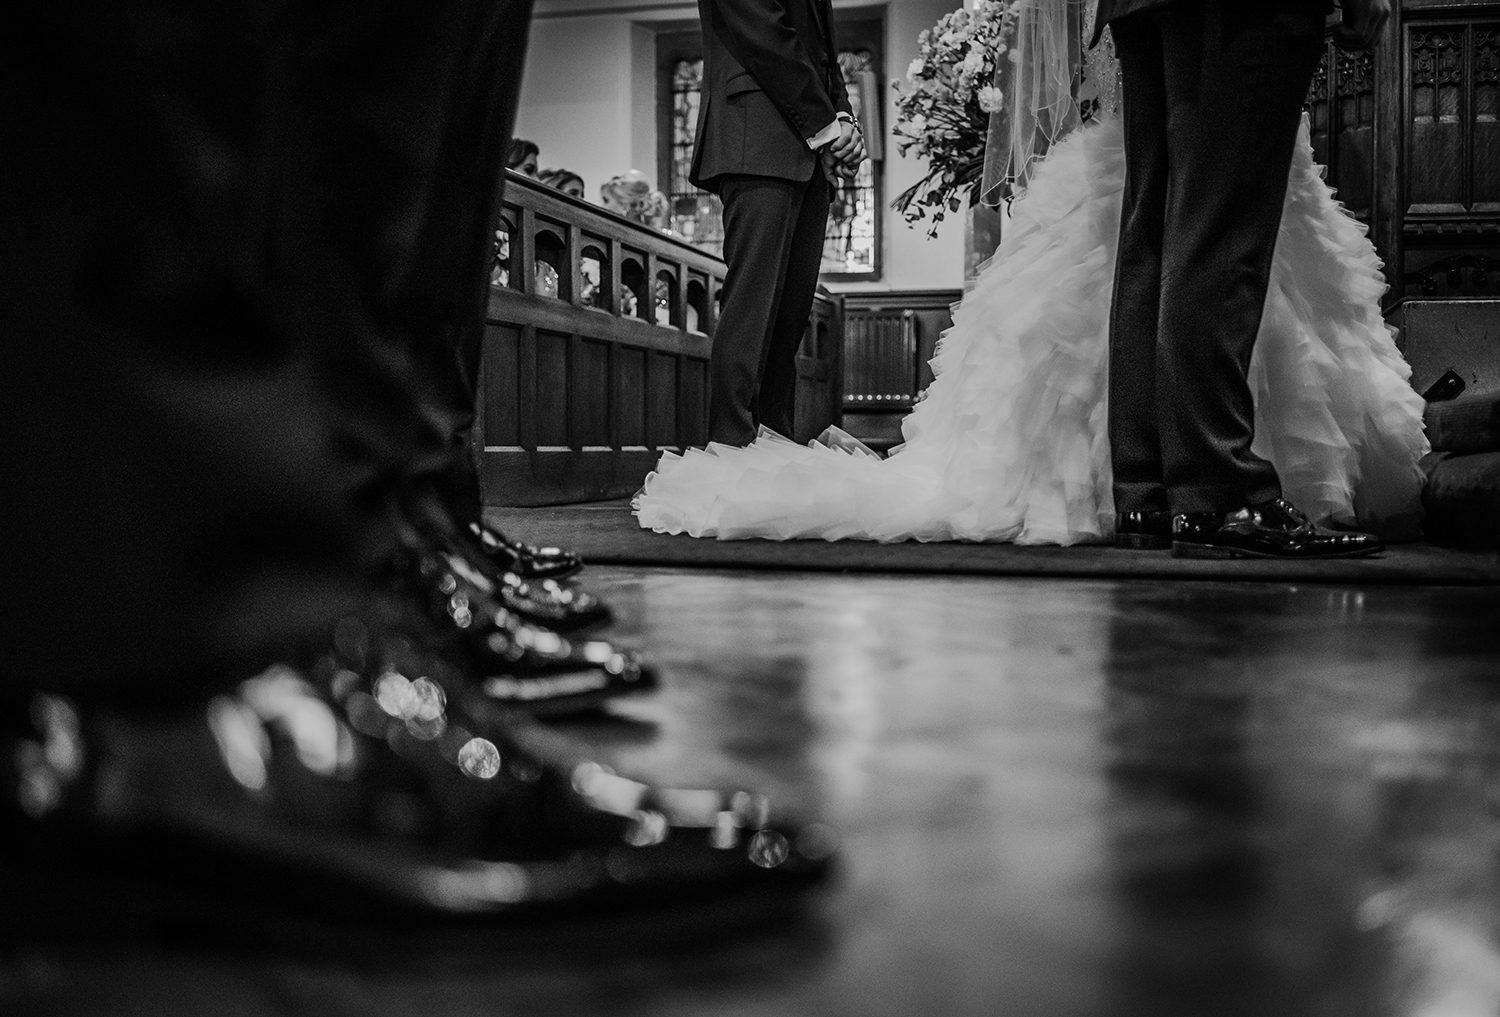 wedding dress and groomsmen shoes